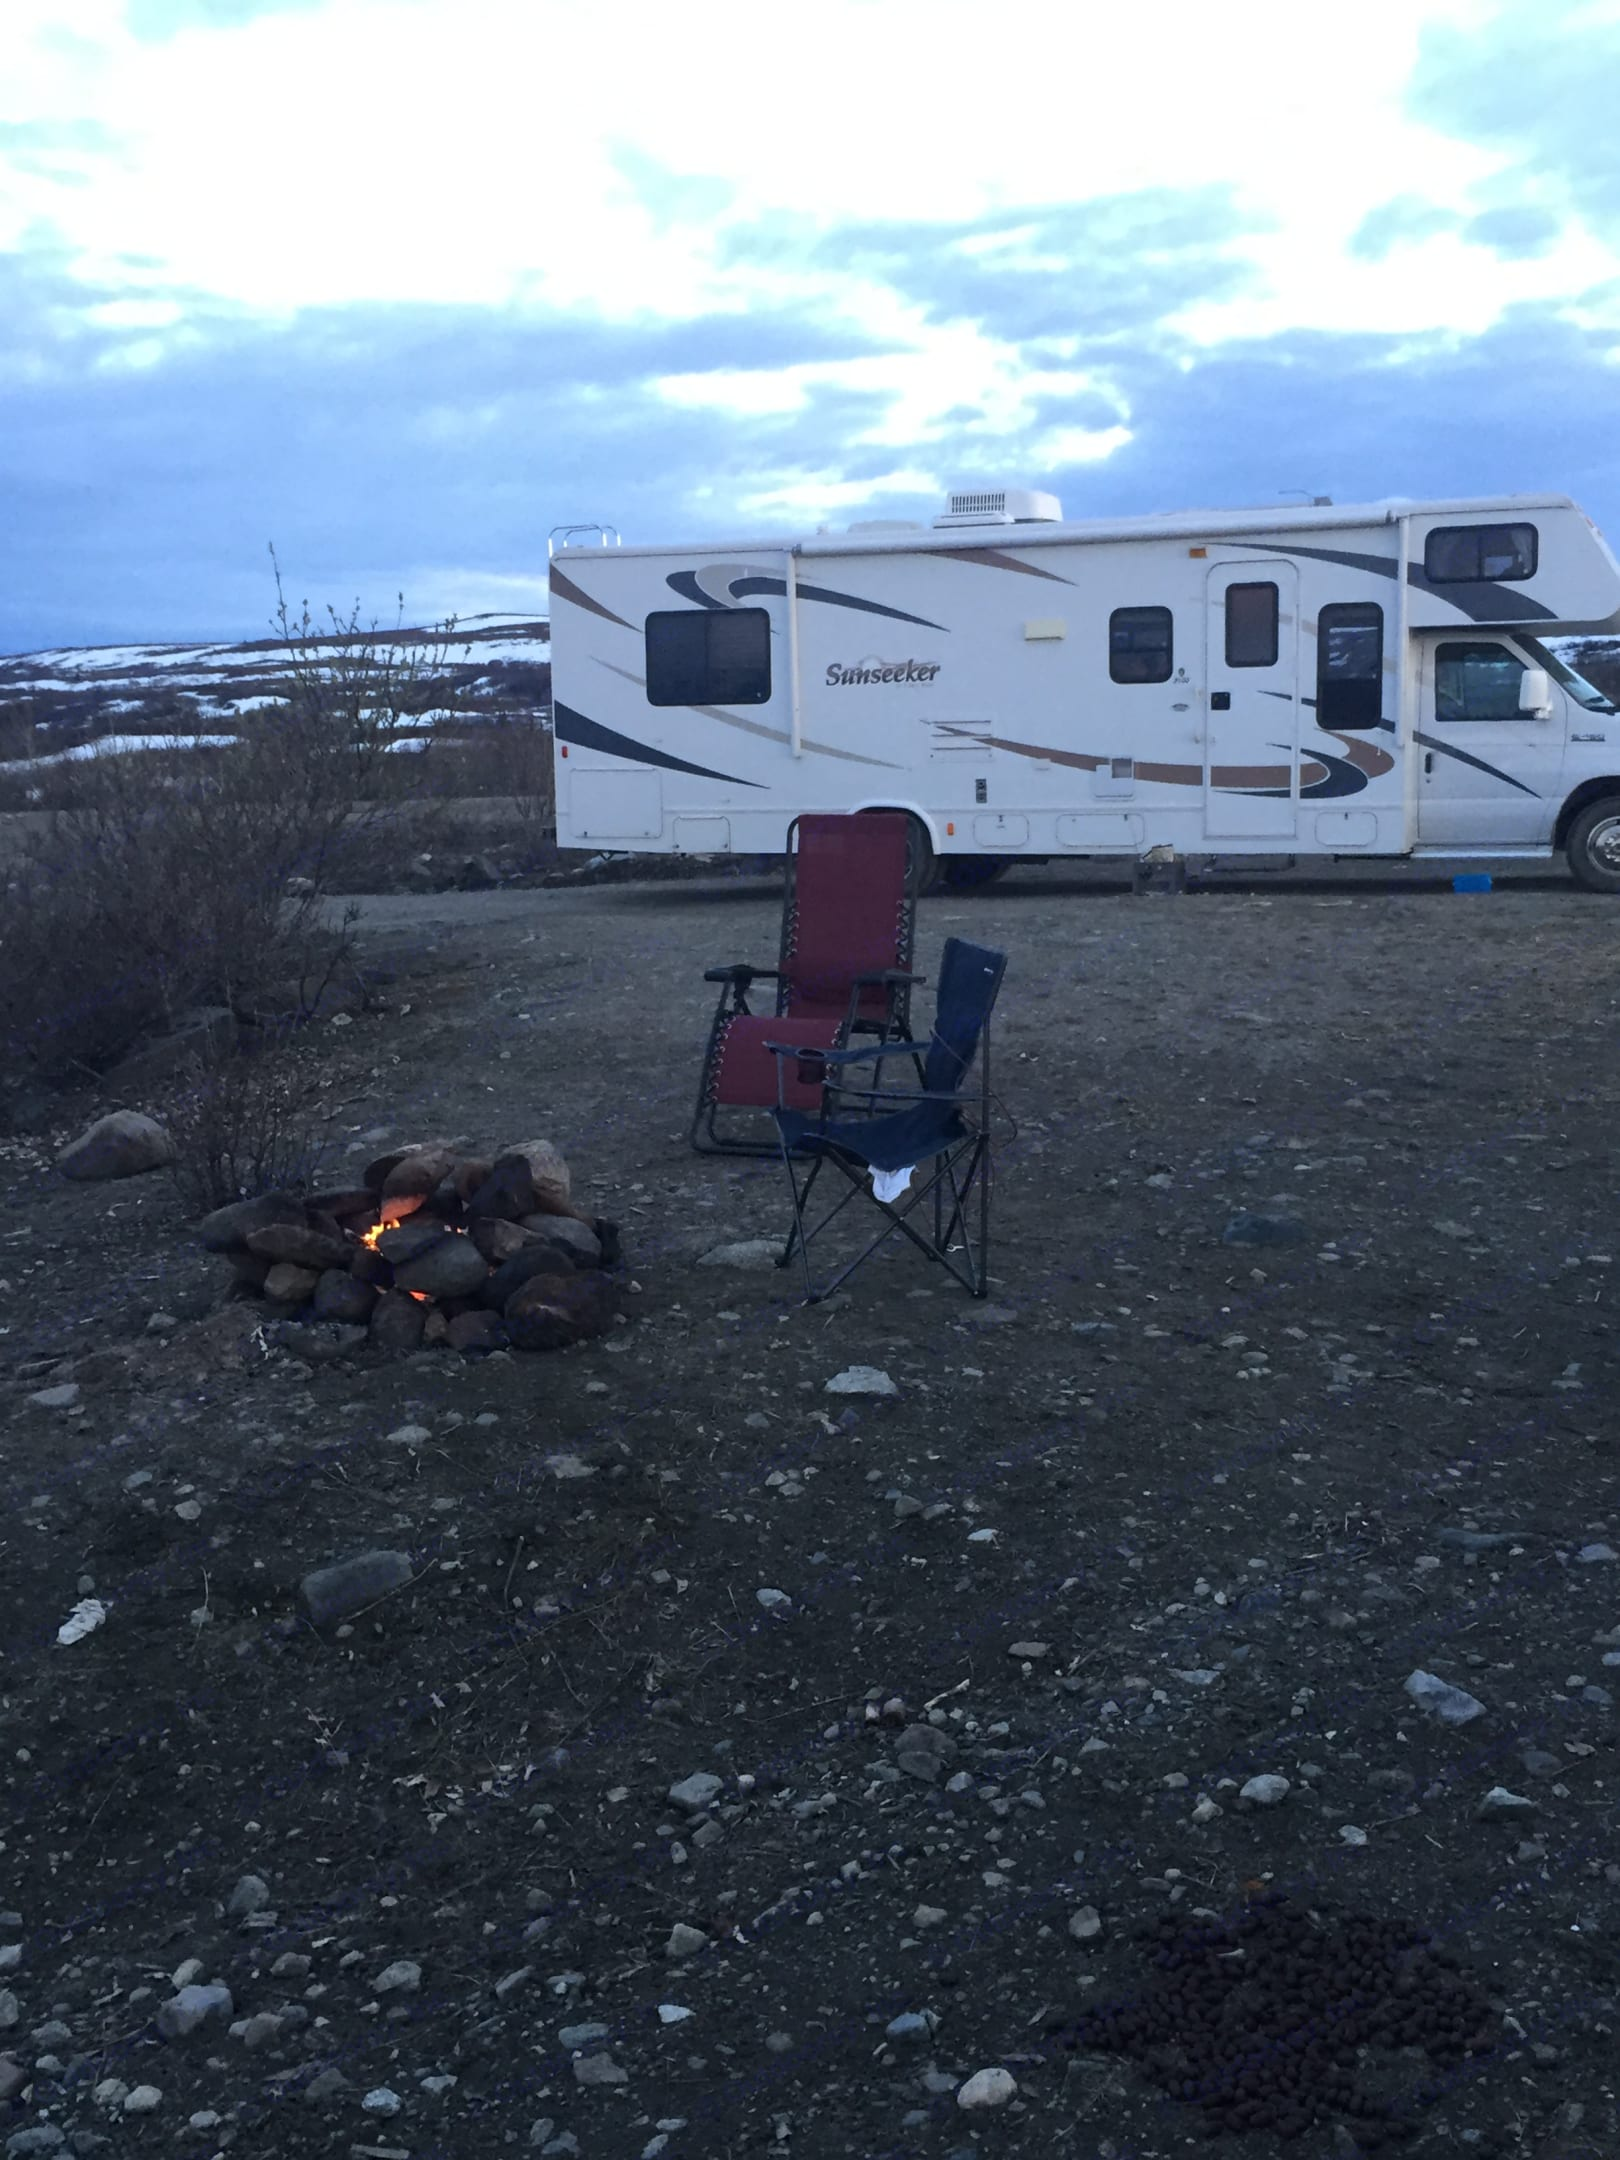 This was the first camping trip I took in the RV! Epic, peaceful Alaska views!. Forest River Sunseeker 2009